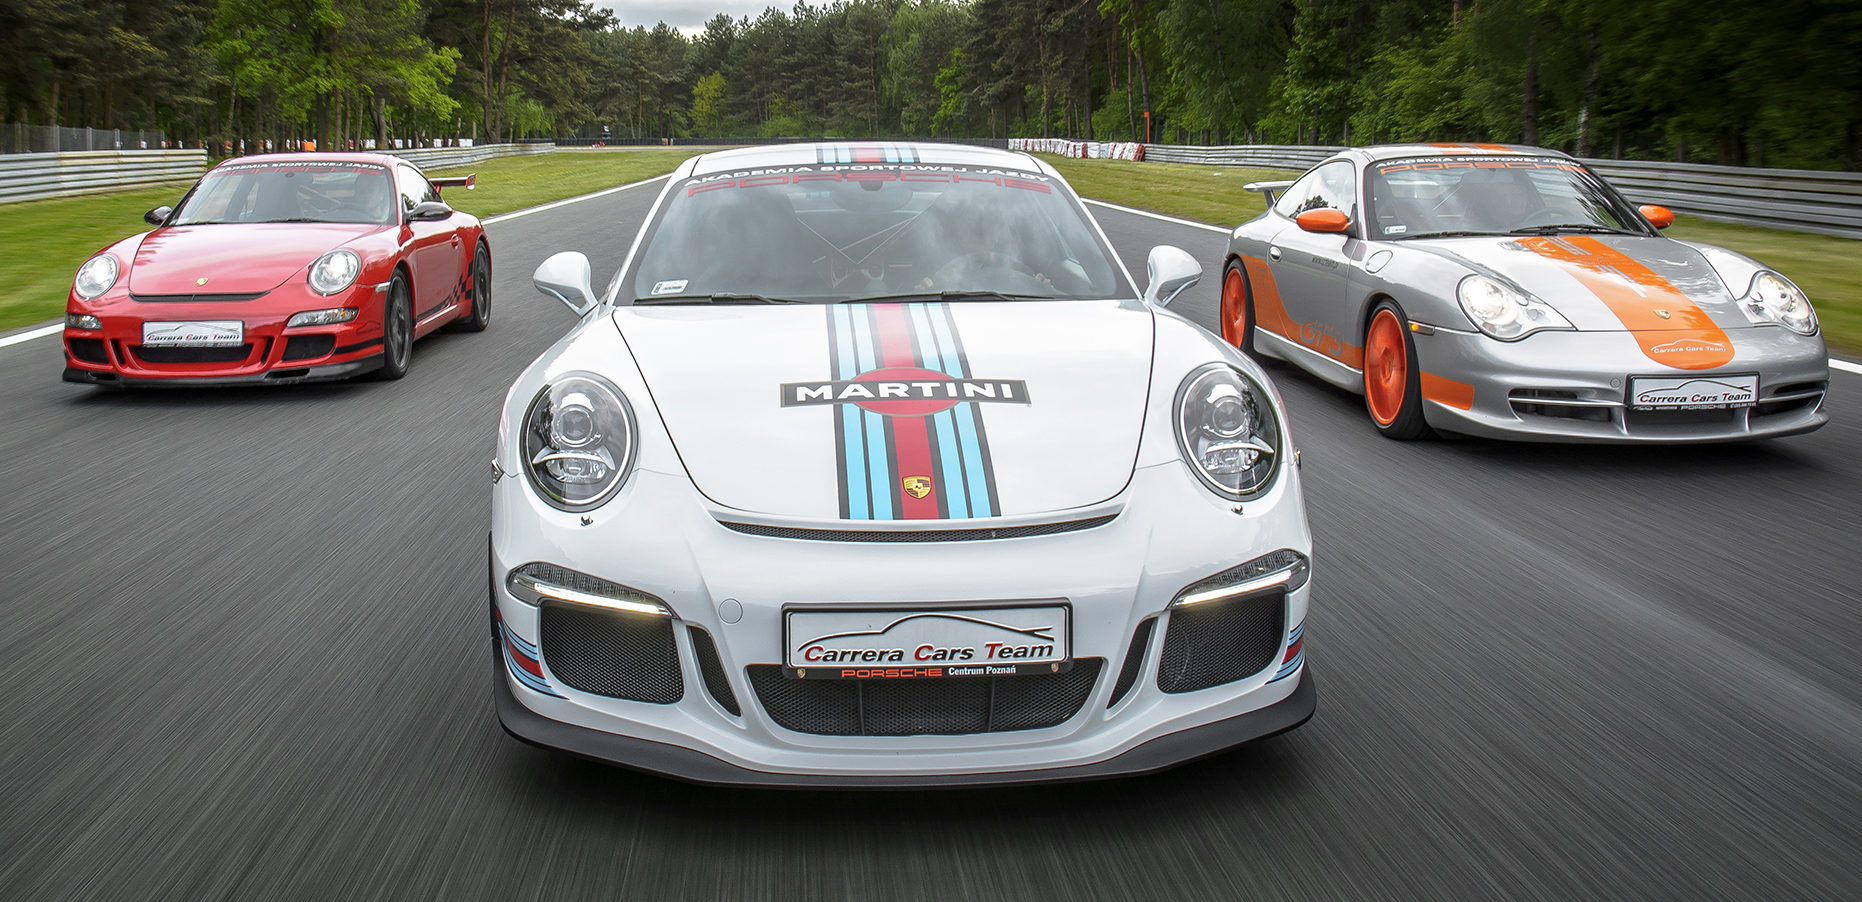 Droga do Porsche – Tor Poznań Track Day